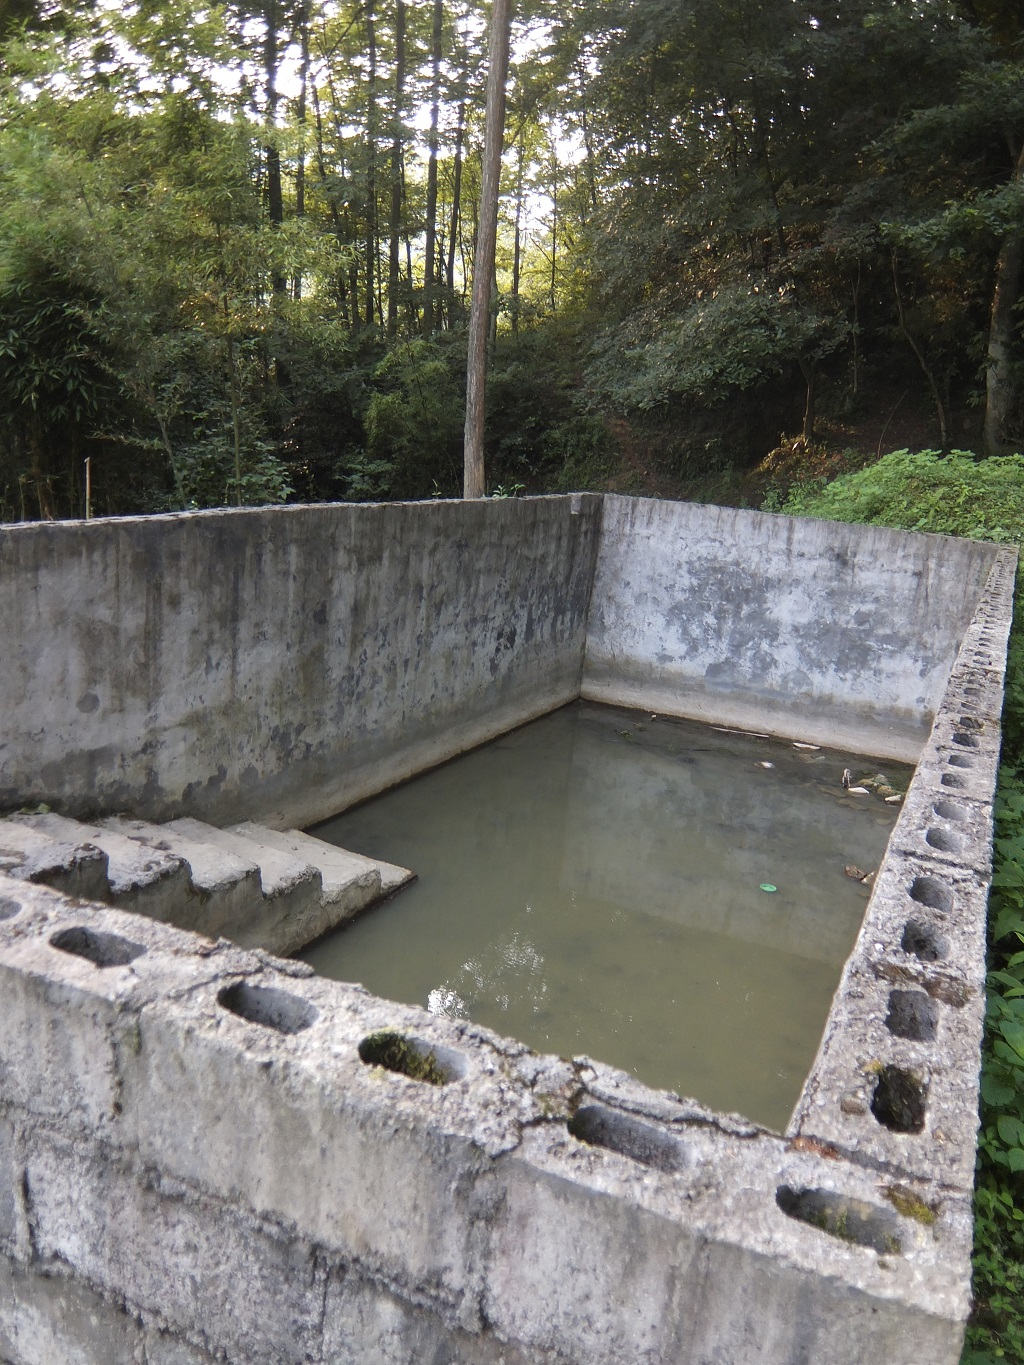 A resevoir for animals drinking